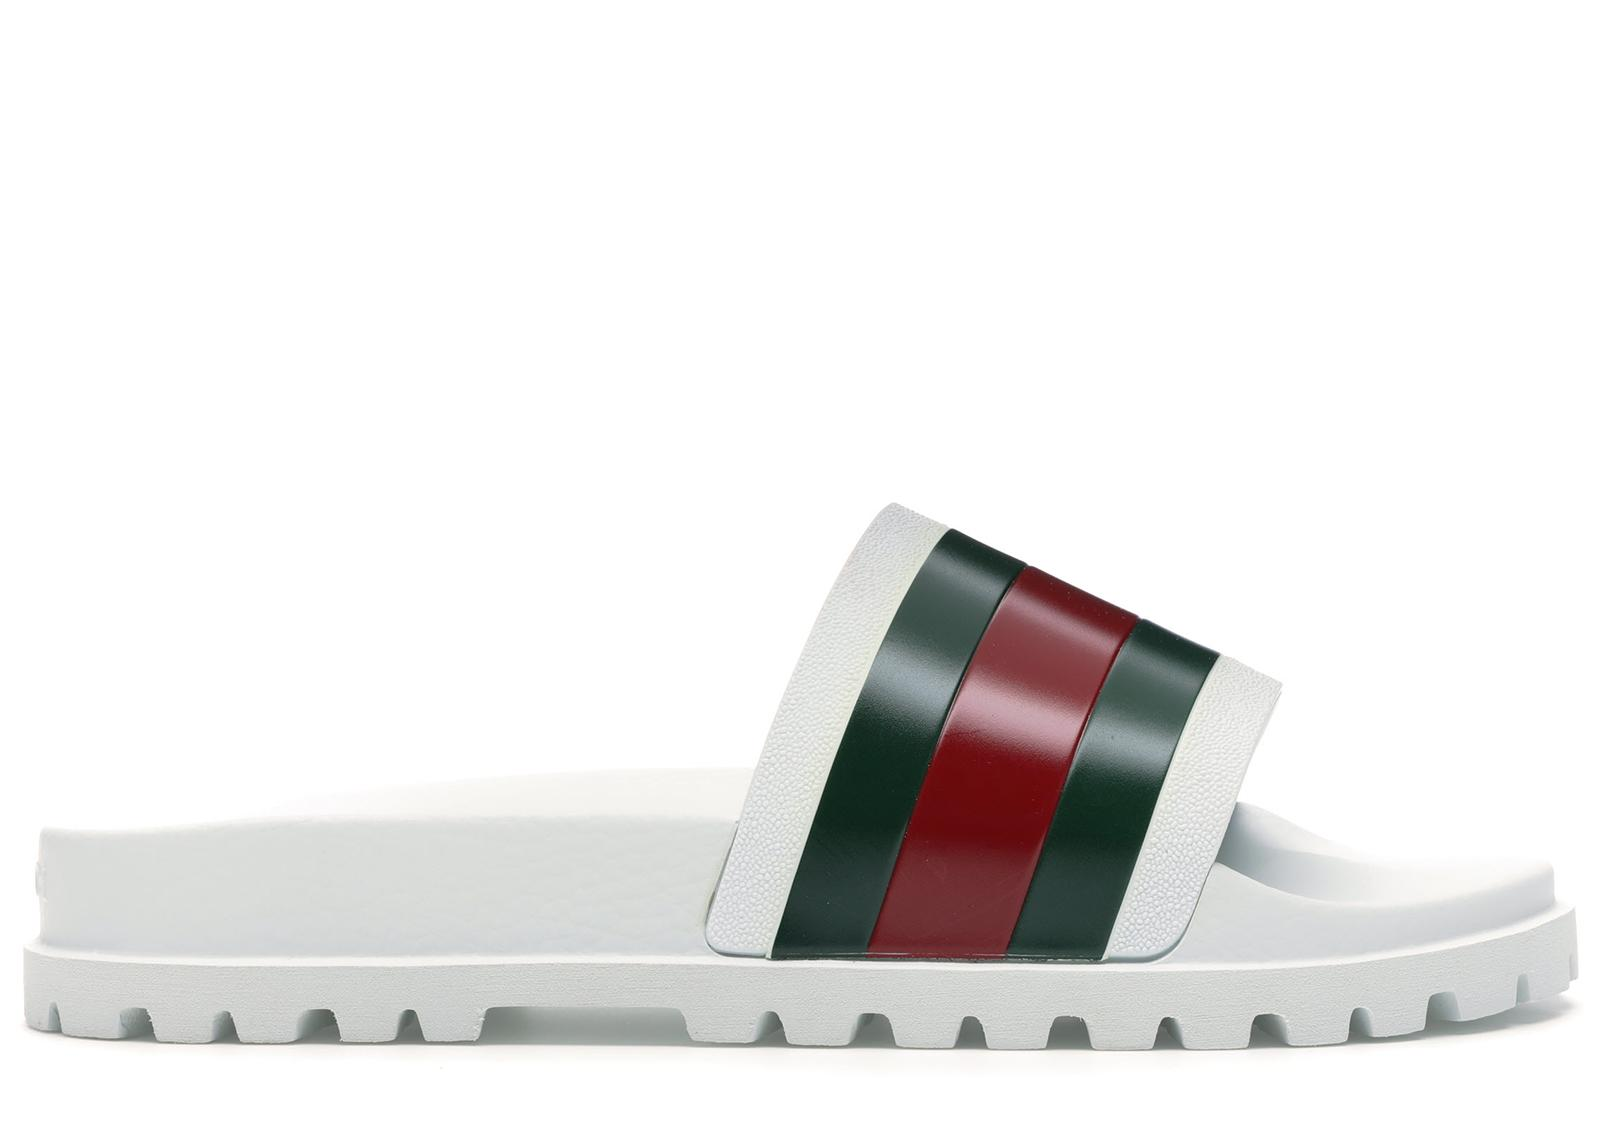 Gucci Rubber Web Detail Slides in